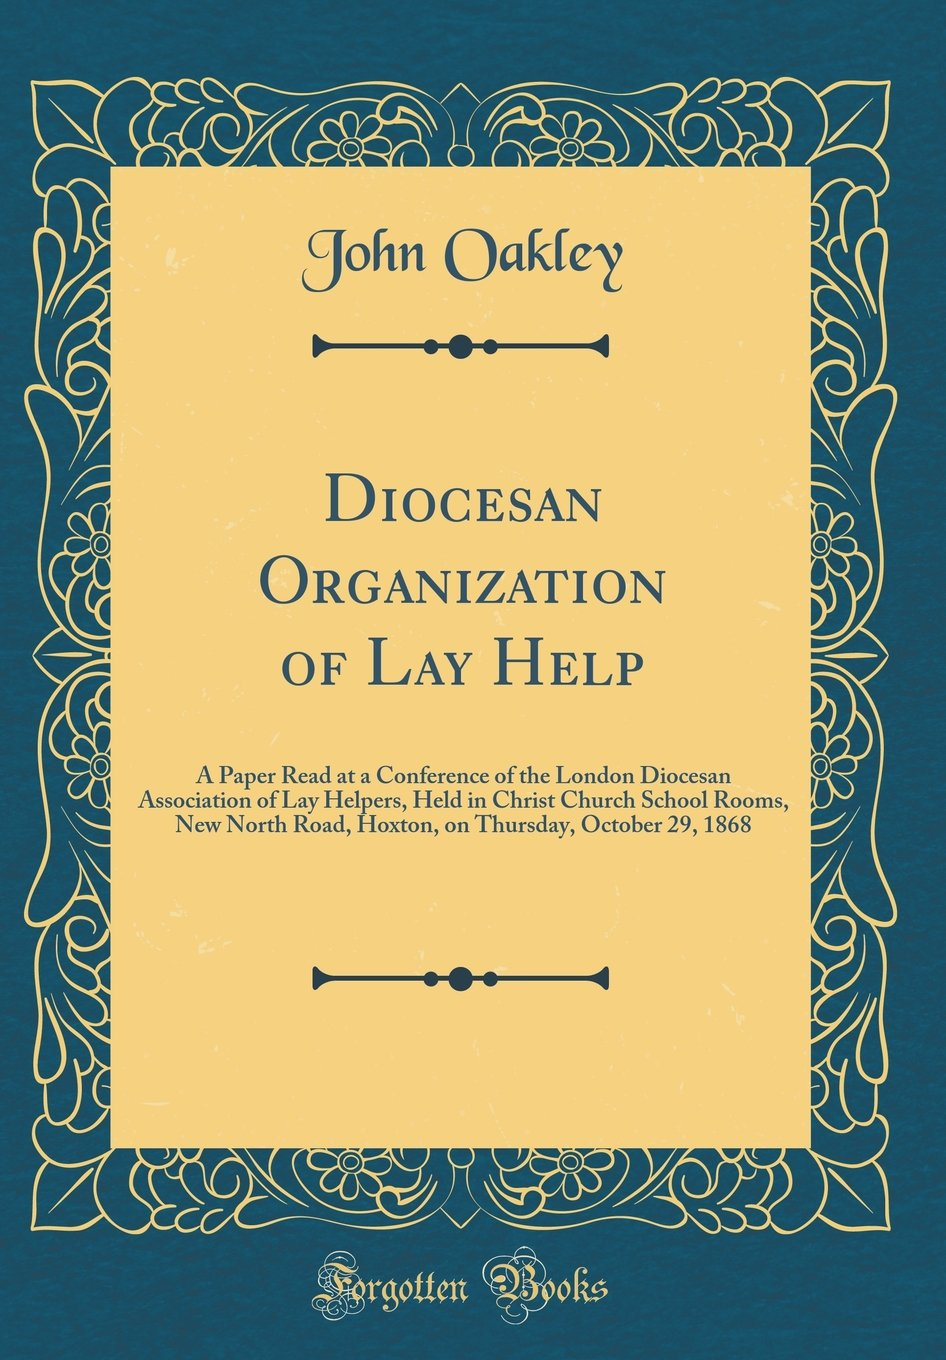 Download Diocesan Organization of Lay Help: A Paper Read at a Conference of the London Diocesan Association of Lay Helpers, Held in Christ Church School Rooms, ... Thursday, October 29, 1868 (Classic Reprint) ePub fb2 ebook